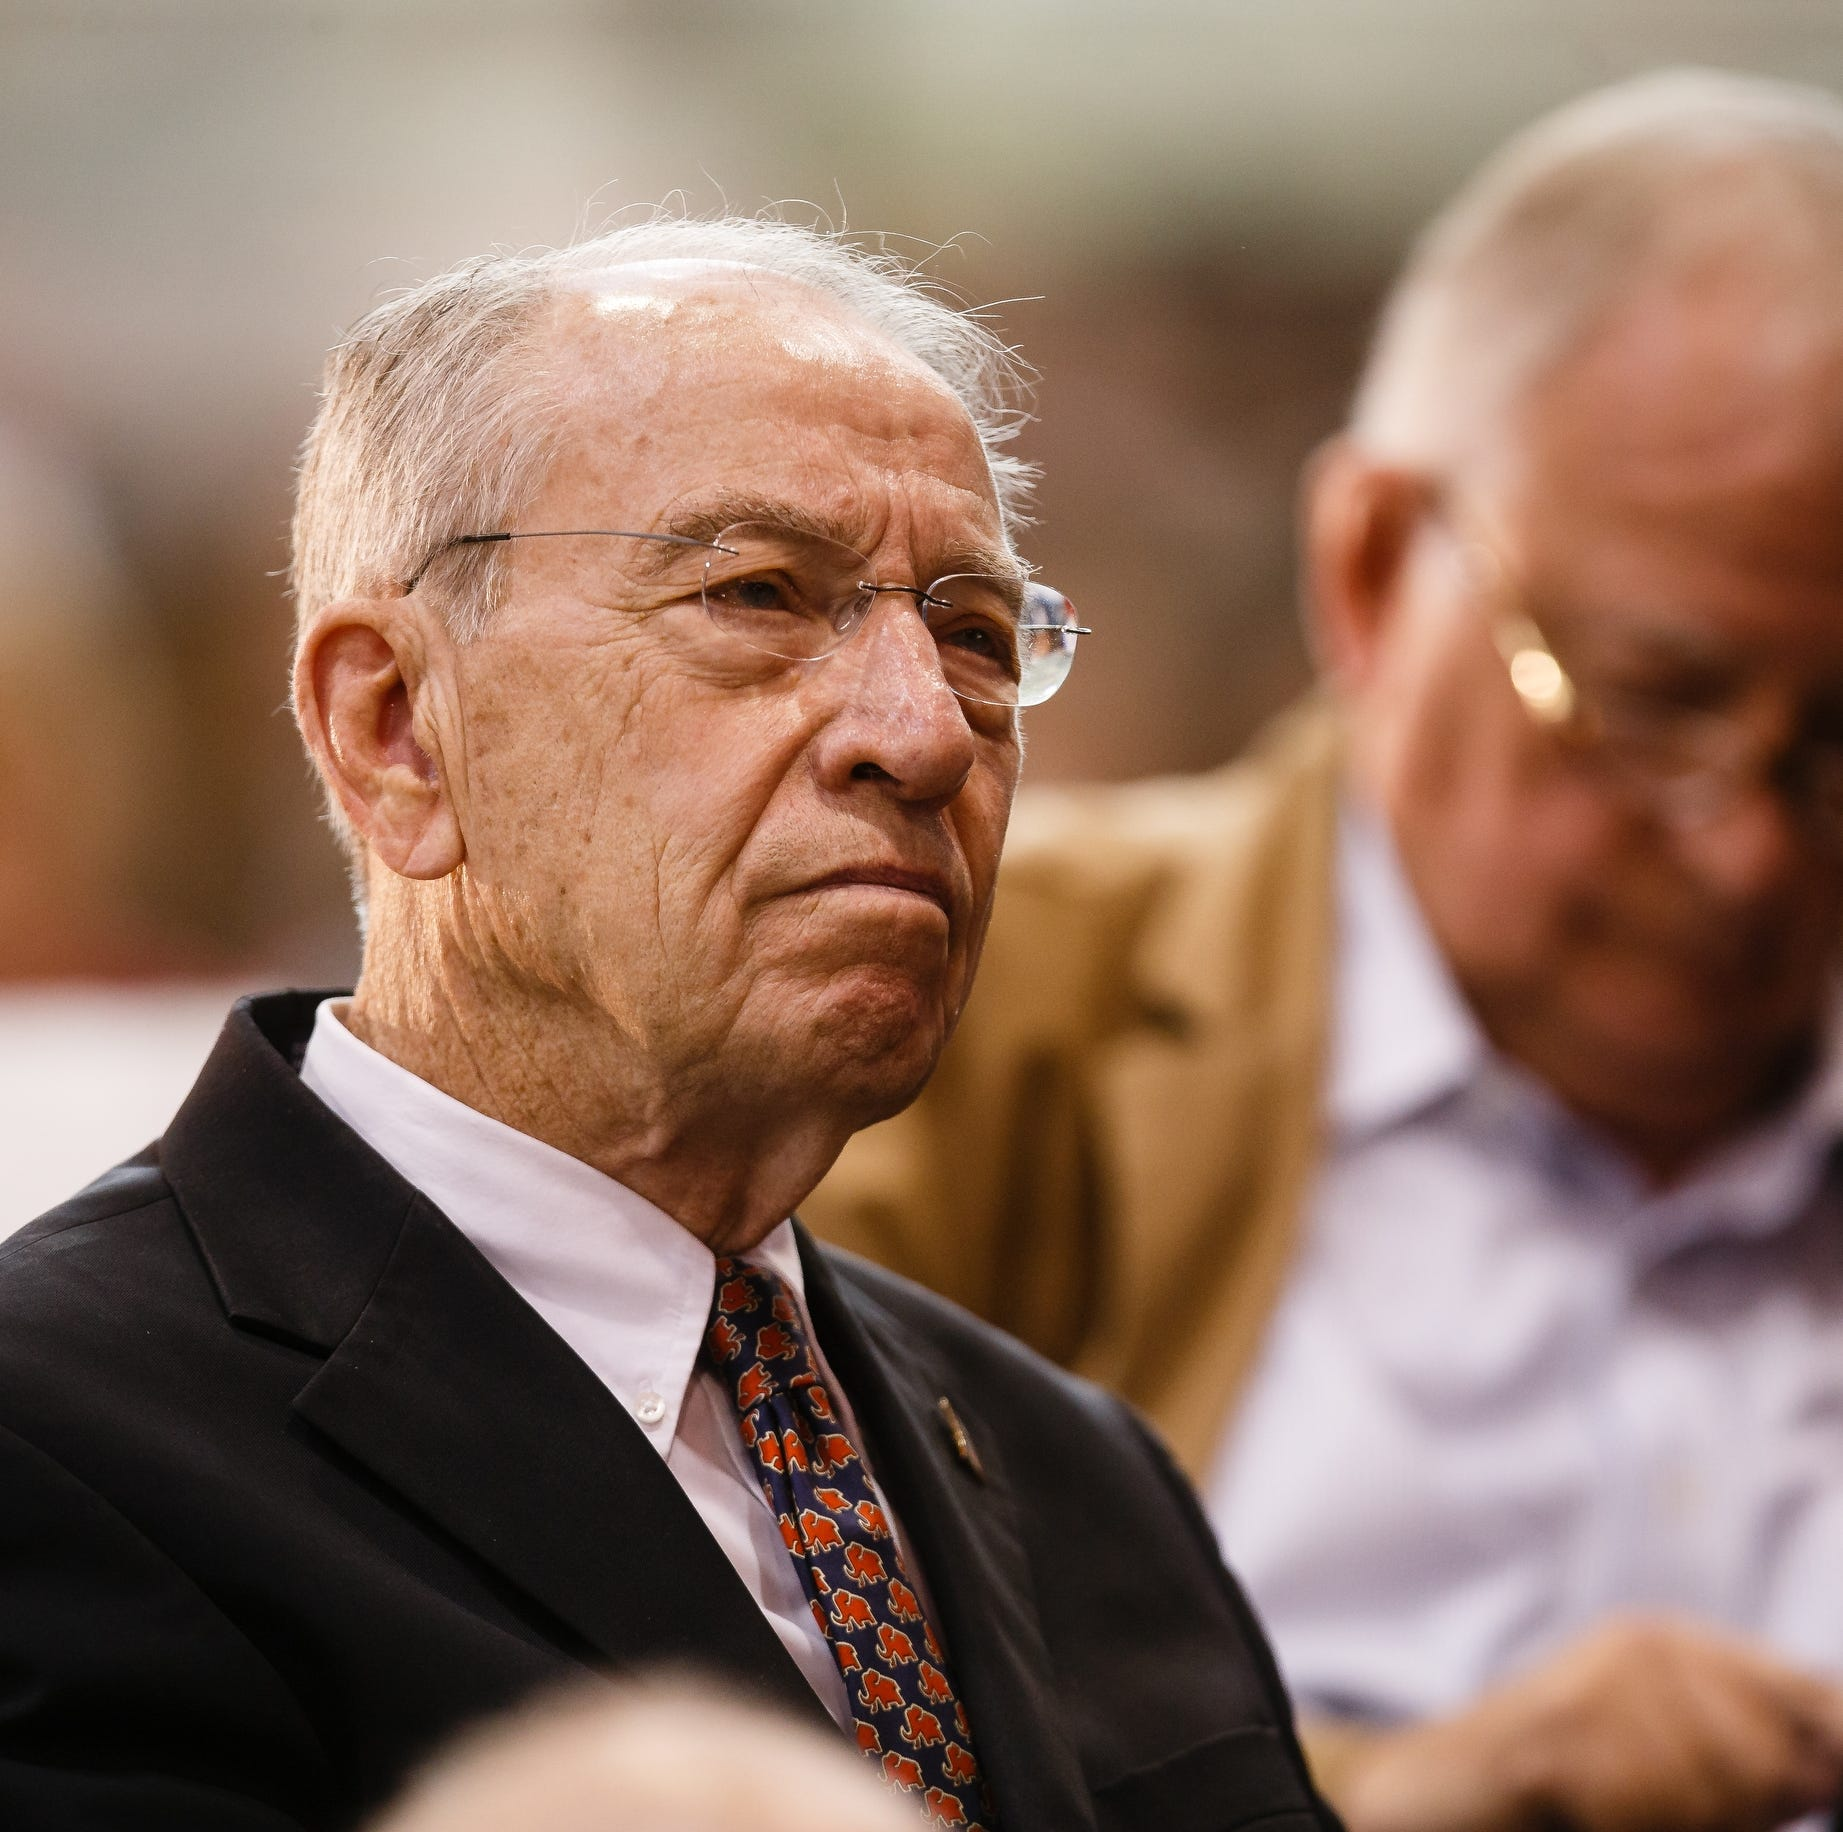 Grassley is wrong to restrict president's ability to block imports